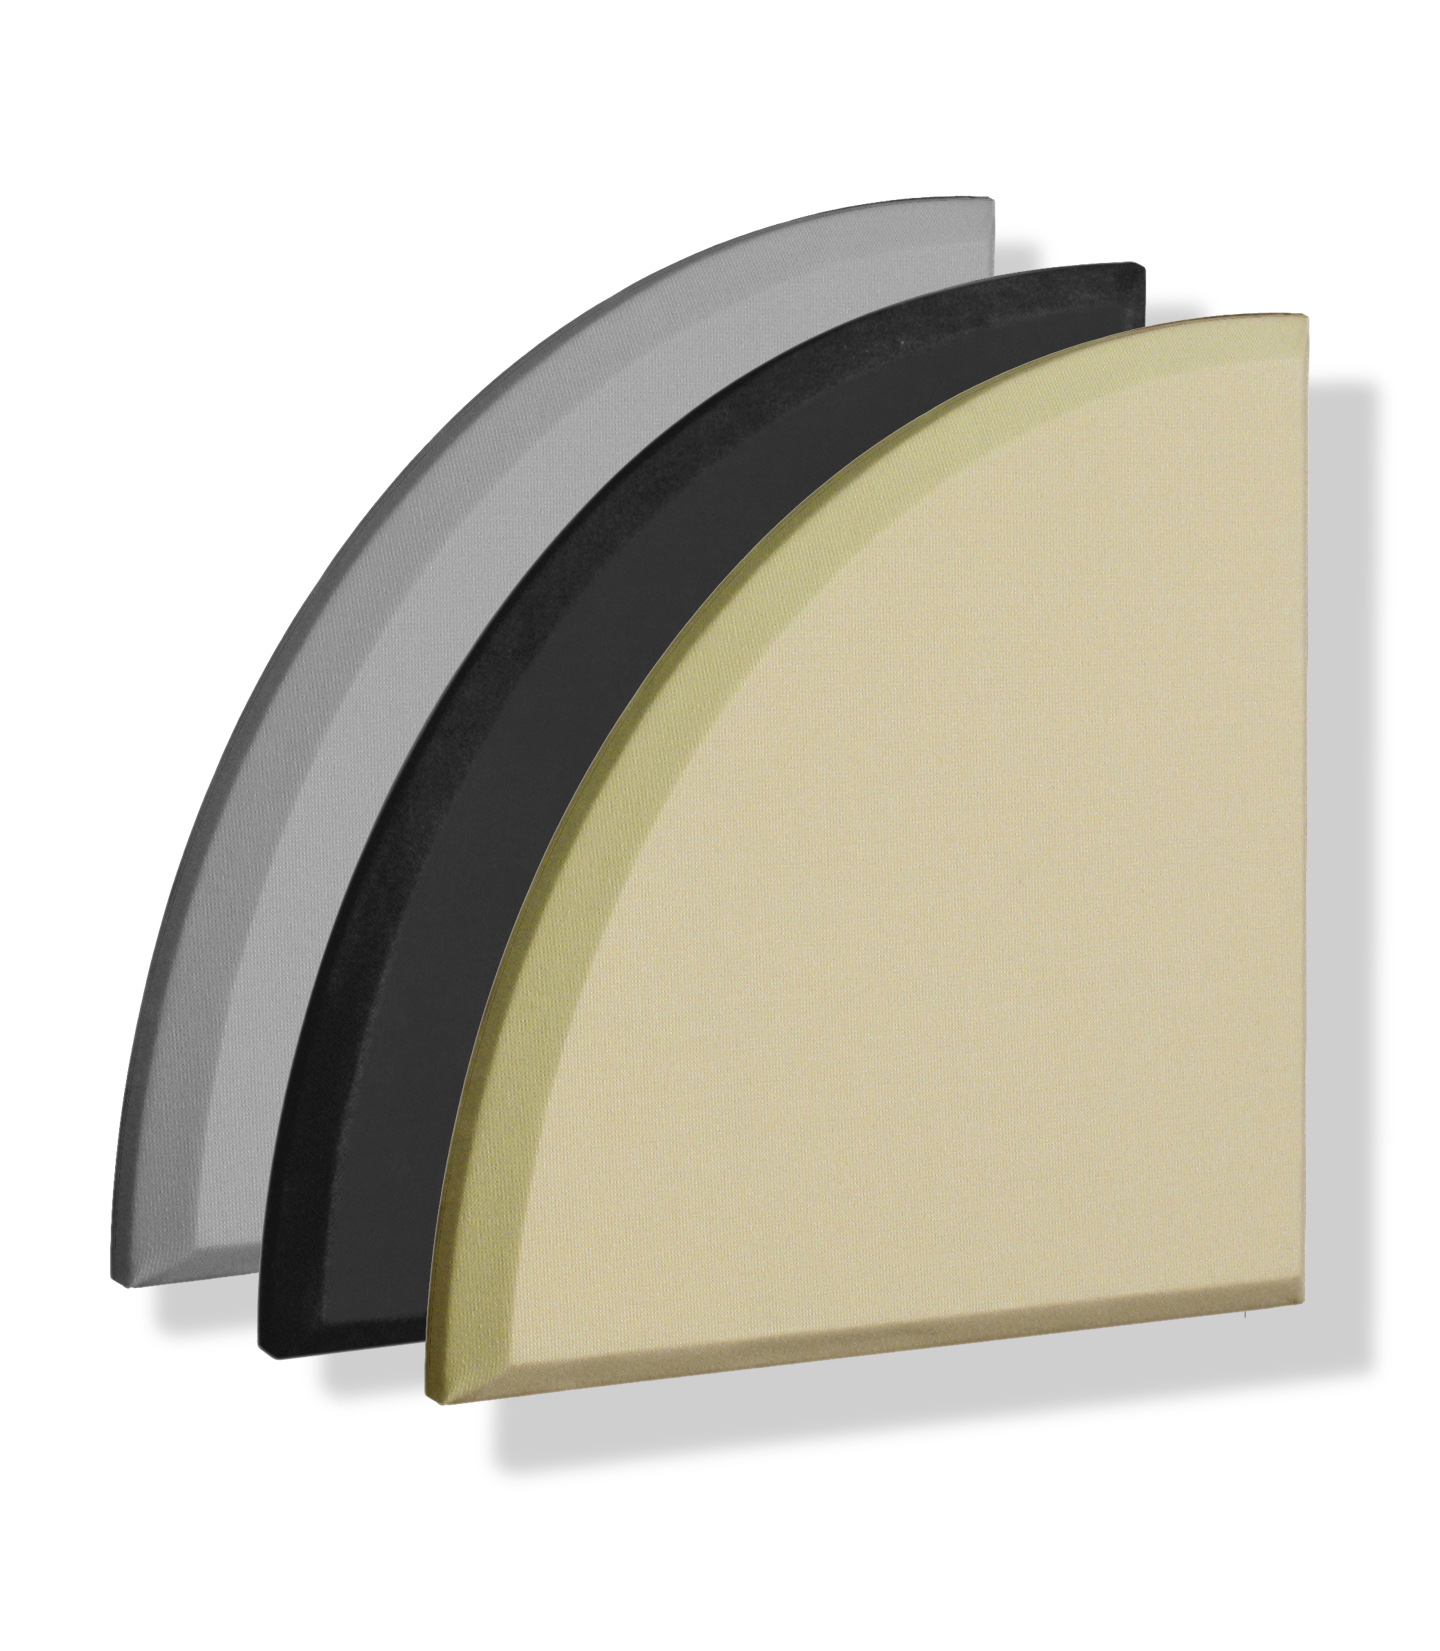 2 ACCENT APEX BEIGE 2pcs per pack